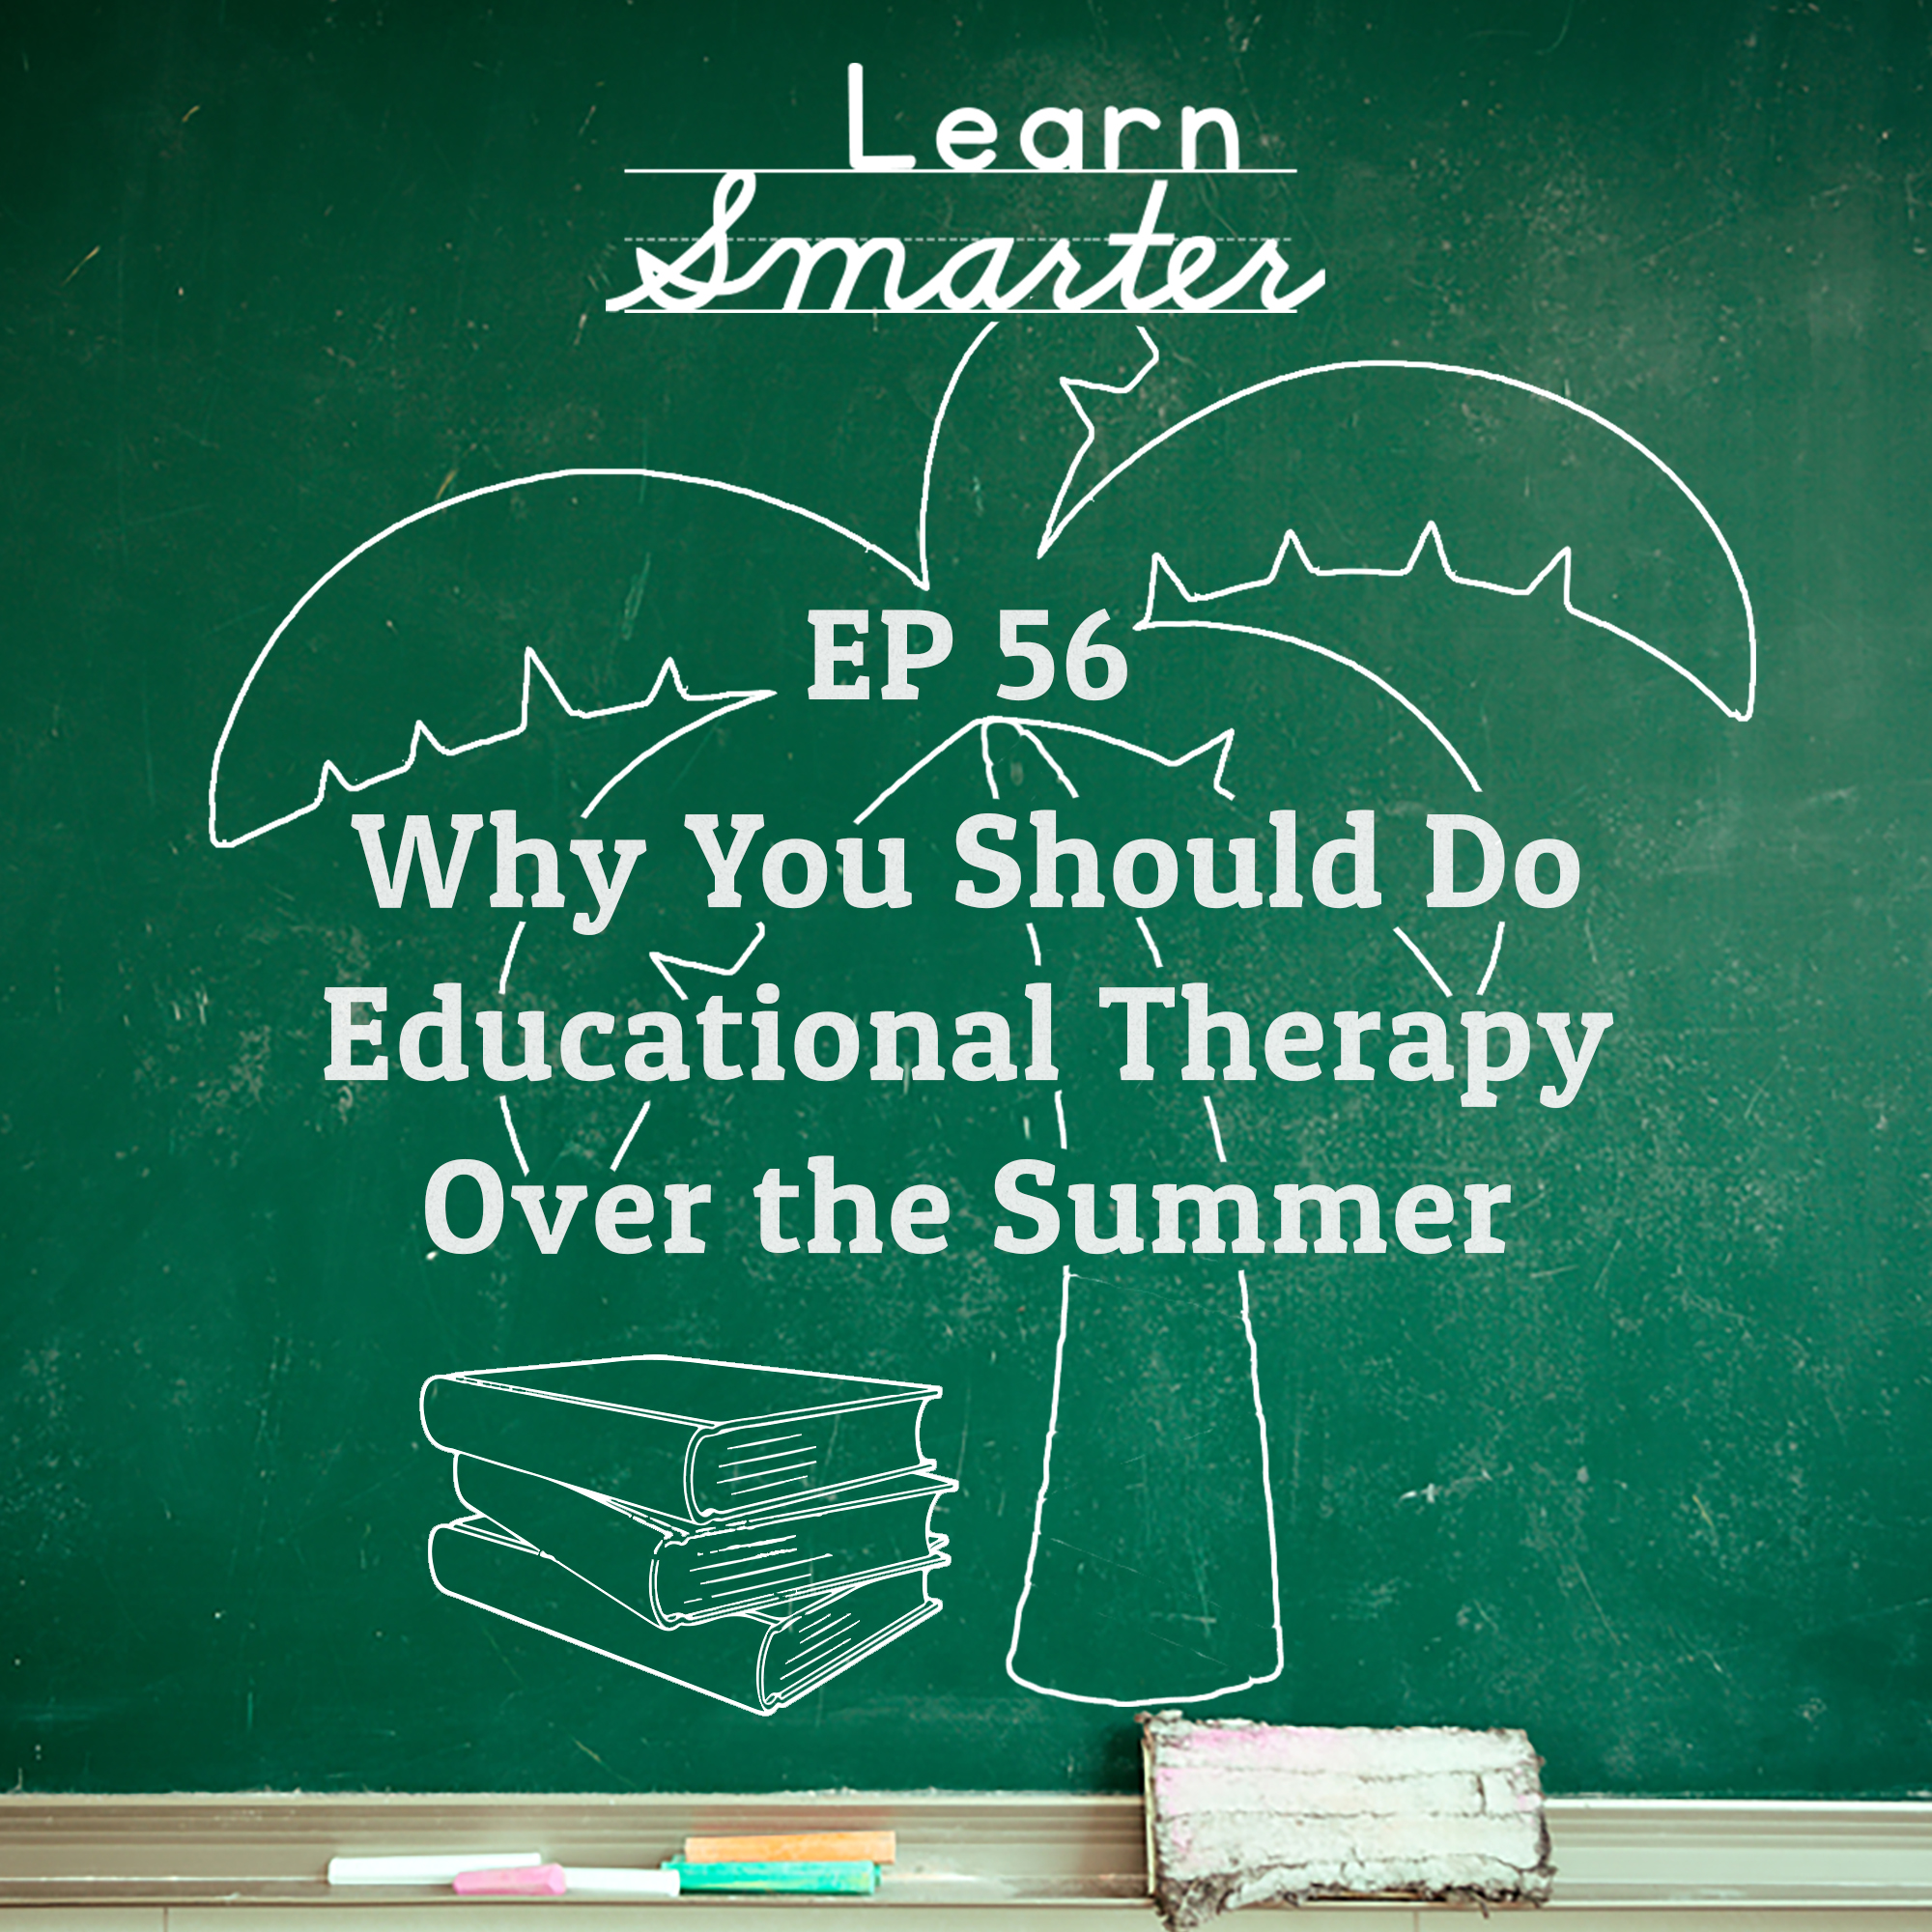 56: Why You Should Do Educational Therapy Over the Summer